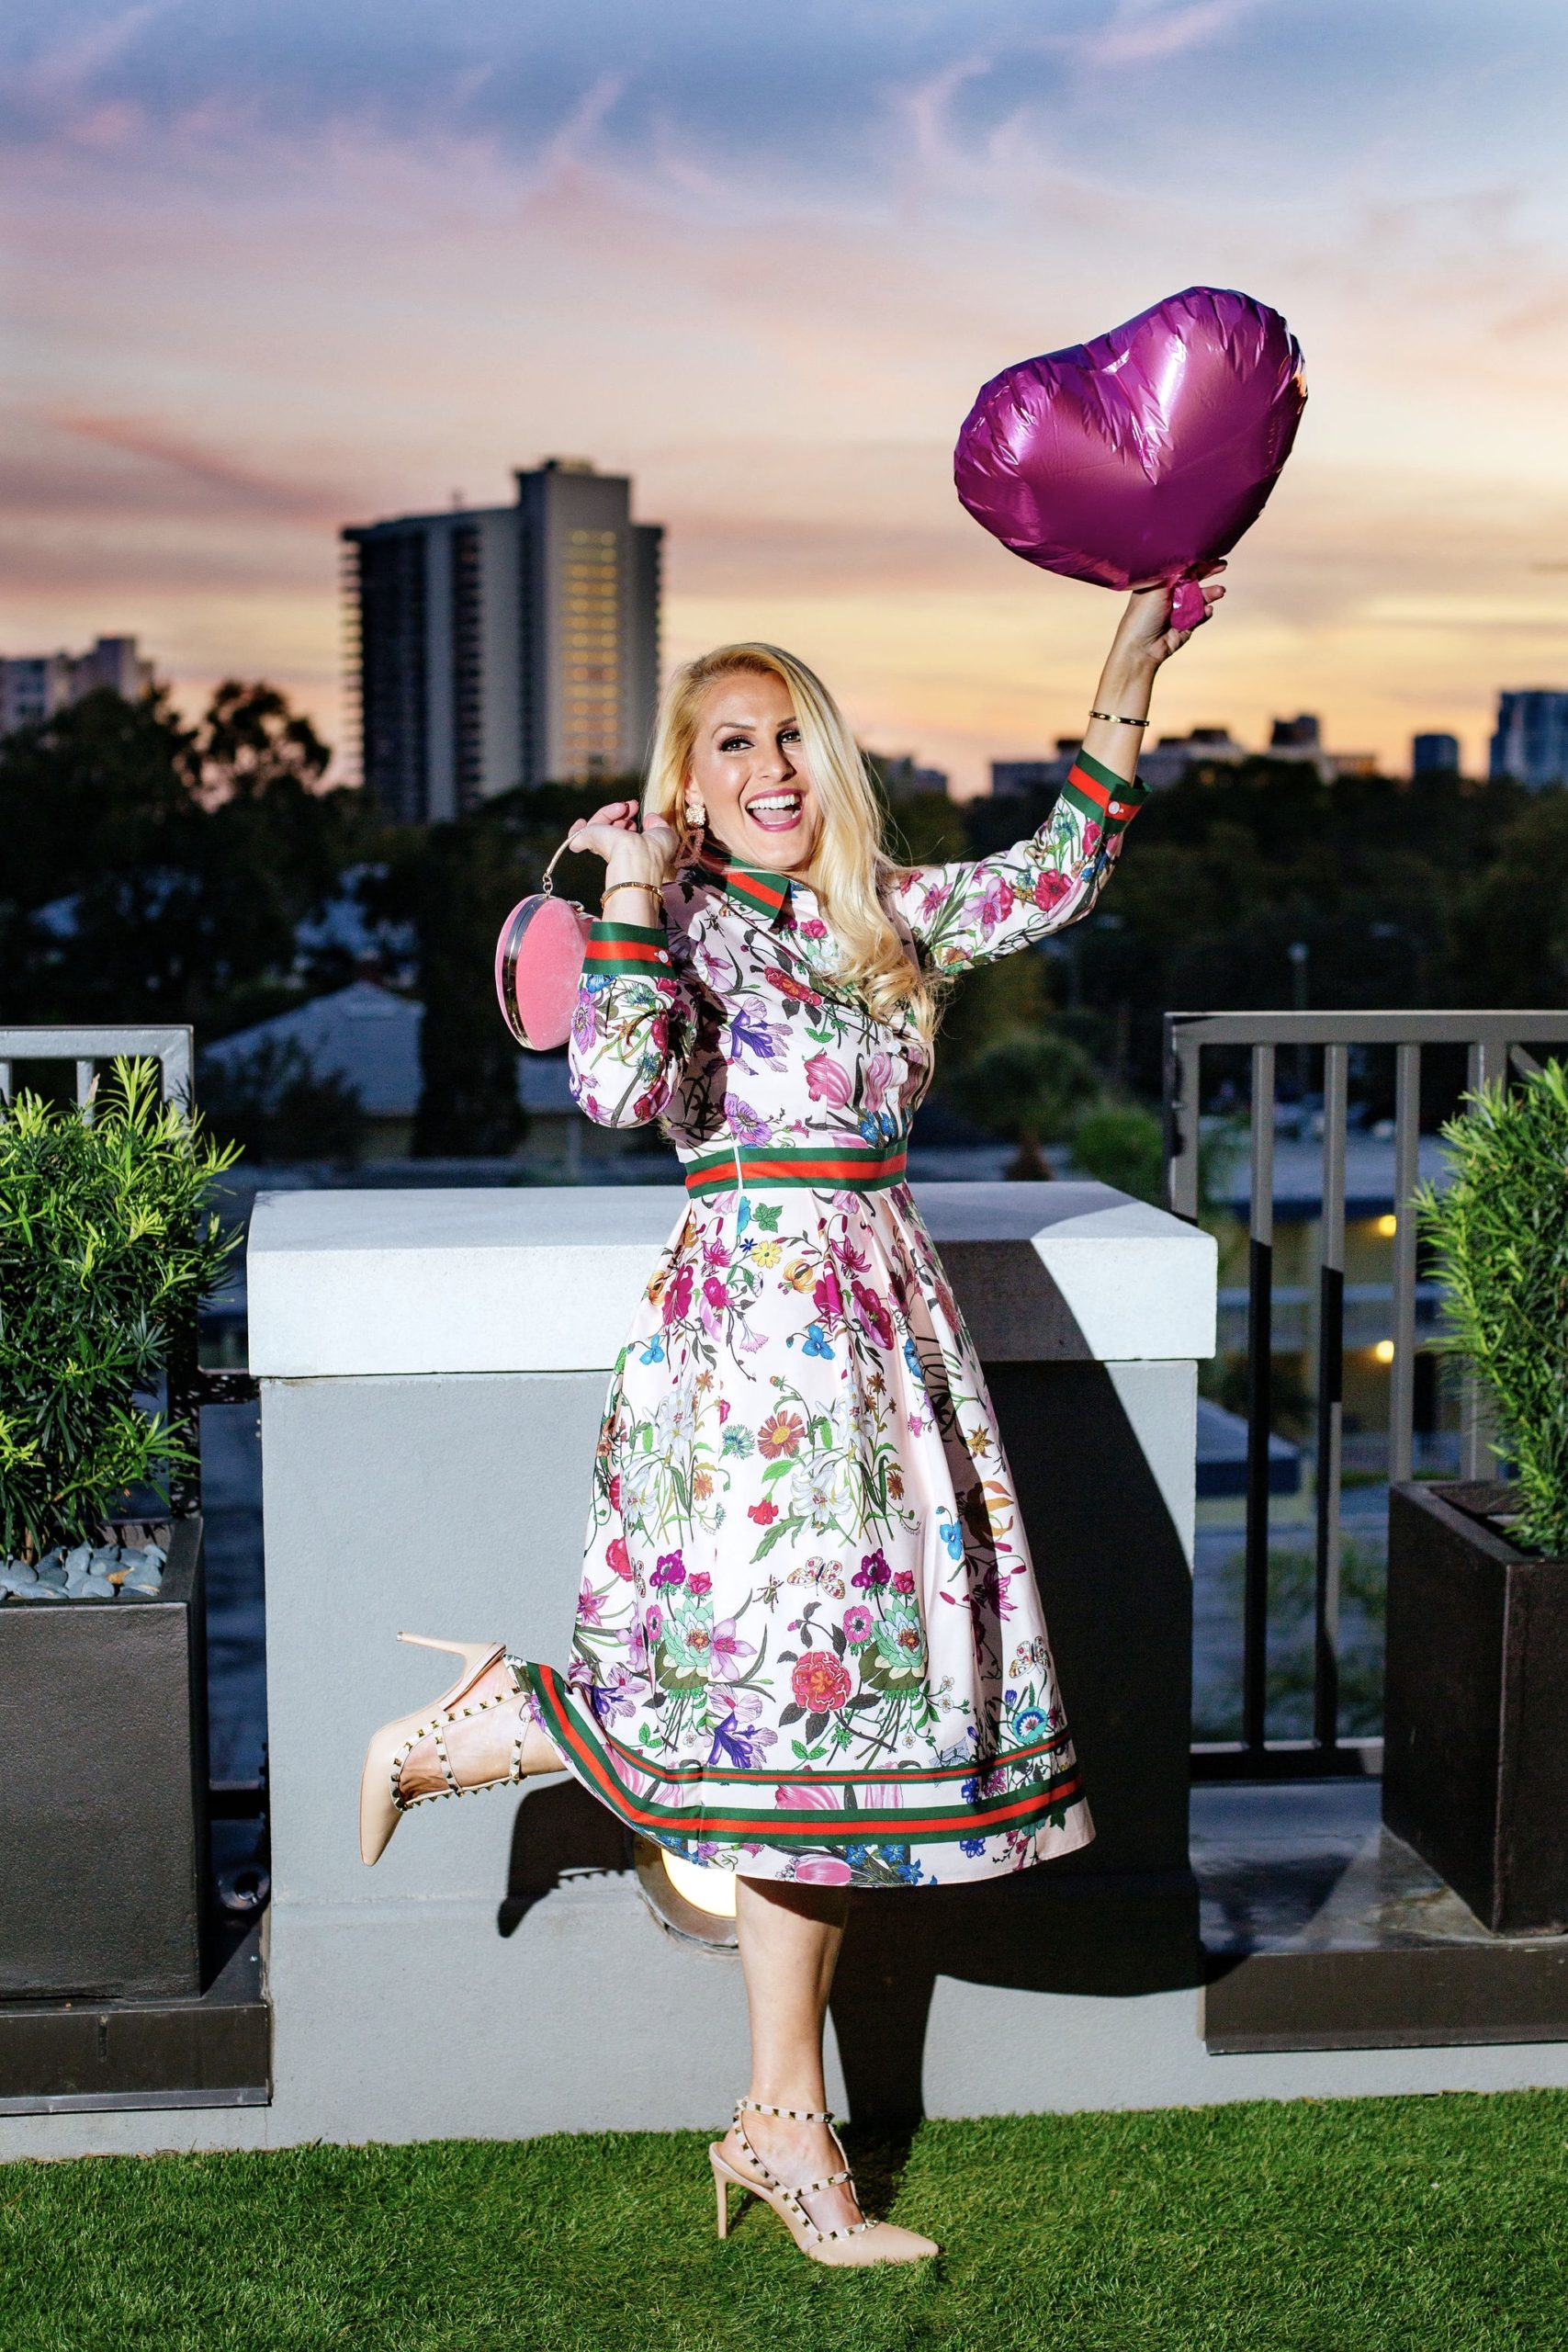 Jenn Truman Fashion and Style Blogger @jtstjtst11 is standing with one leg kicked back admiring the beautiful sunset skyline at Edge Rooftop Cocktail Lounge Epicurean Hotel, Autograph Collection. She is wearing a pink floral dress from amazon fashion and nude studded heels from amazon. She's holding a pink heart ballon in one hand and a pink heart purse in the other.